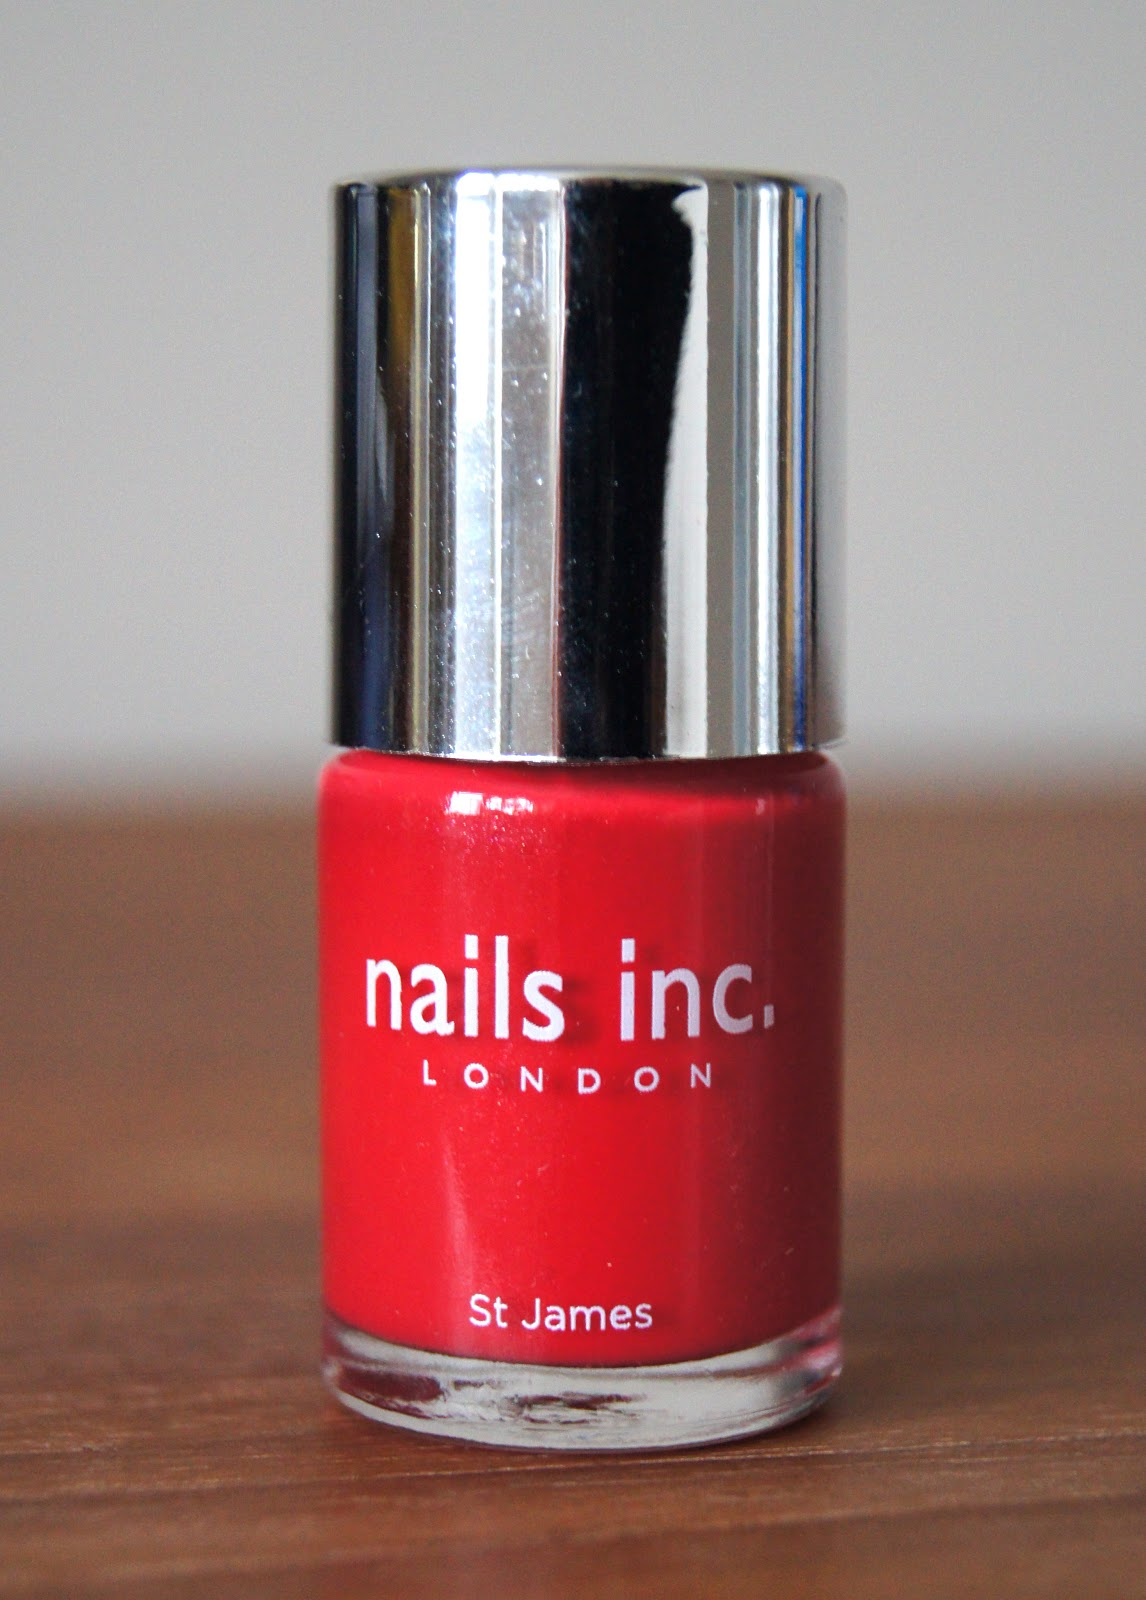 nails inc st james nail polish review